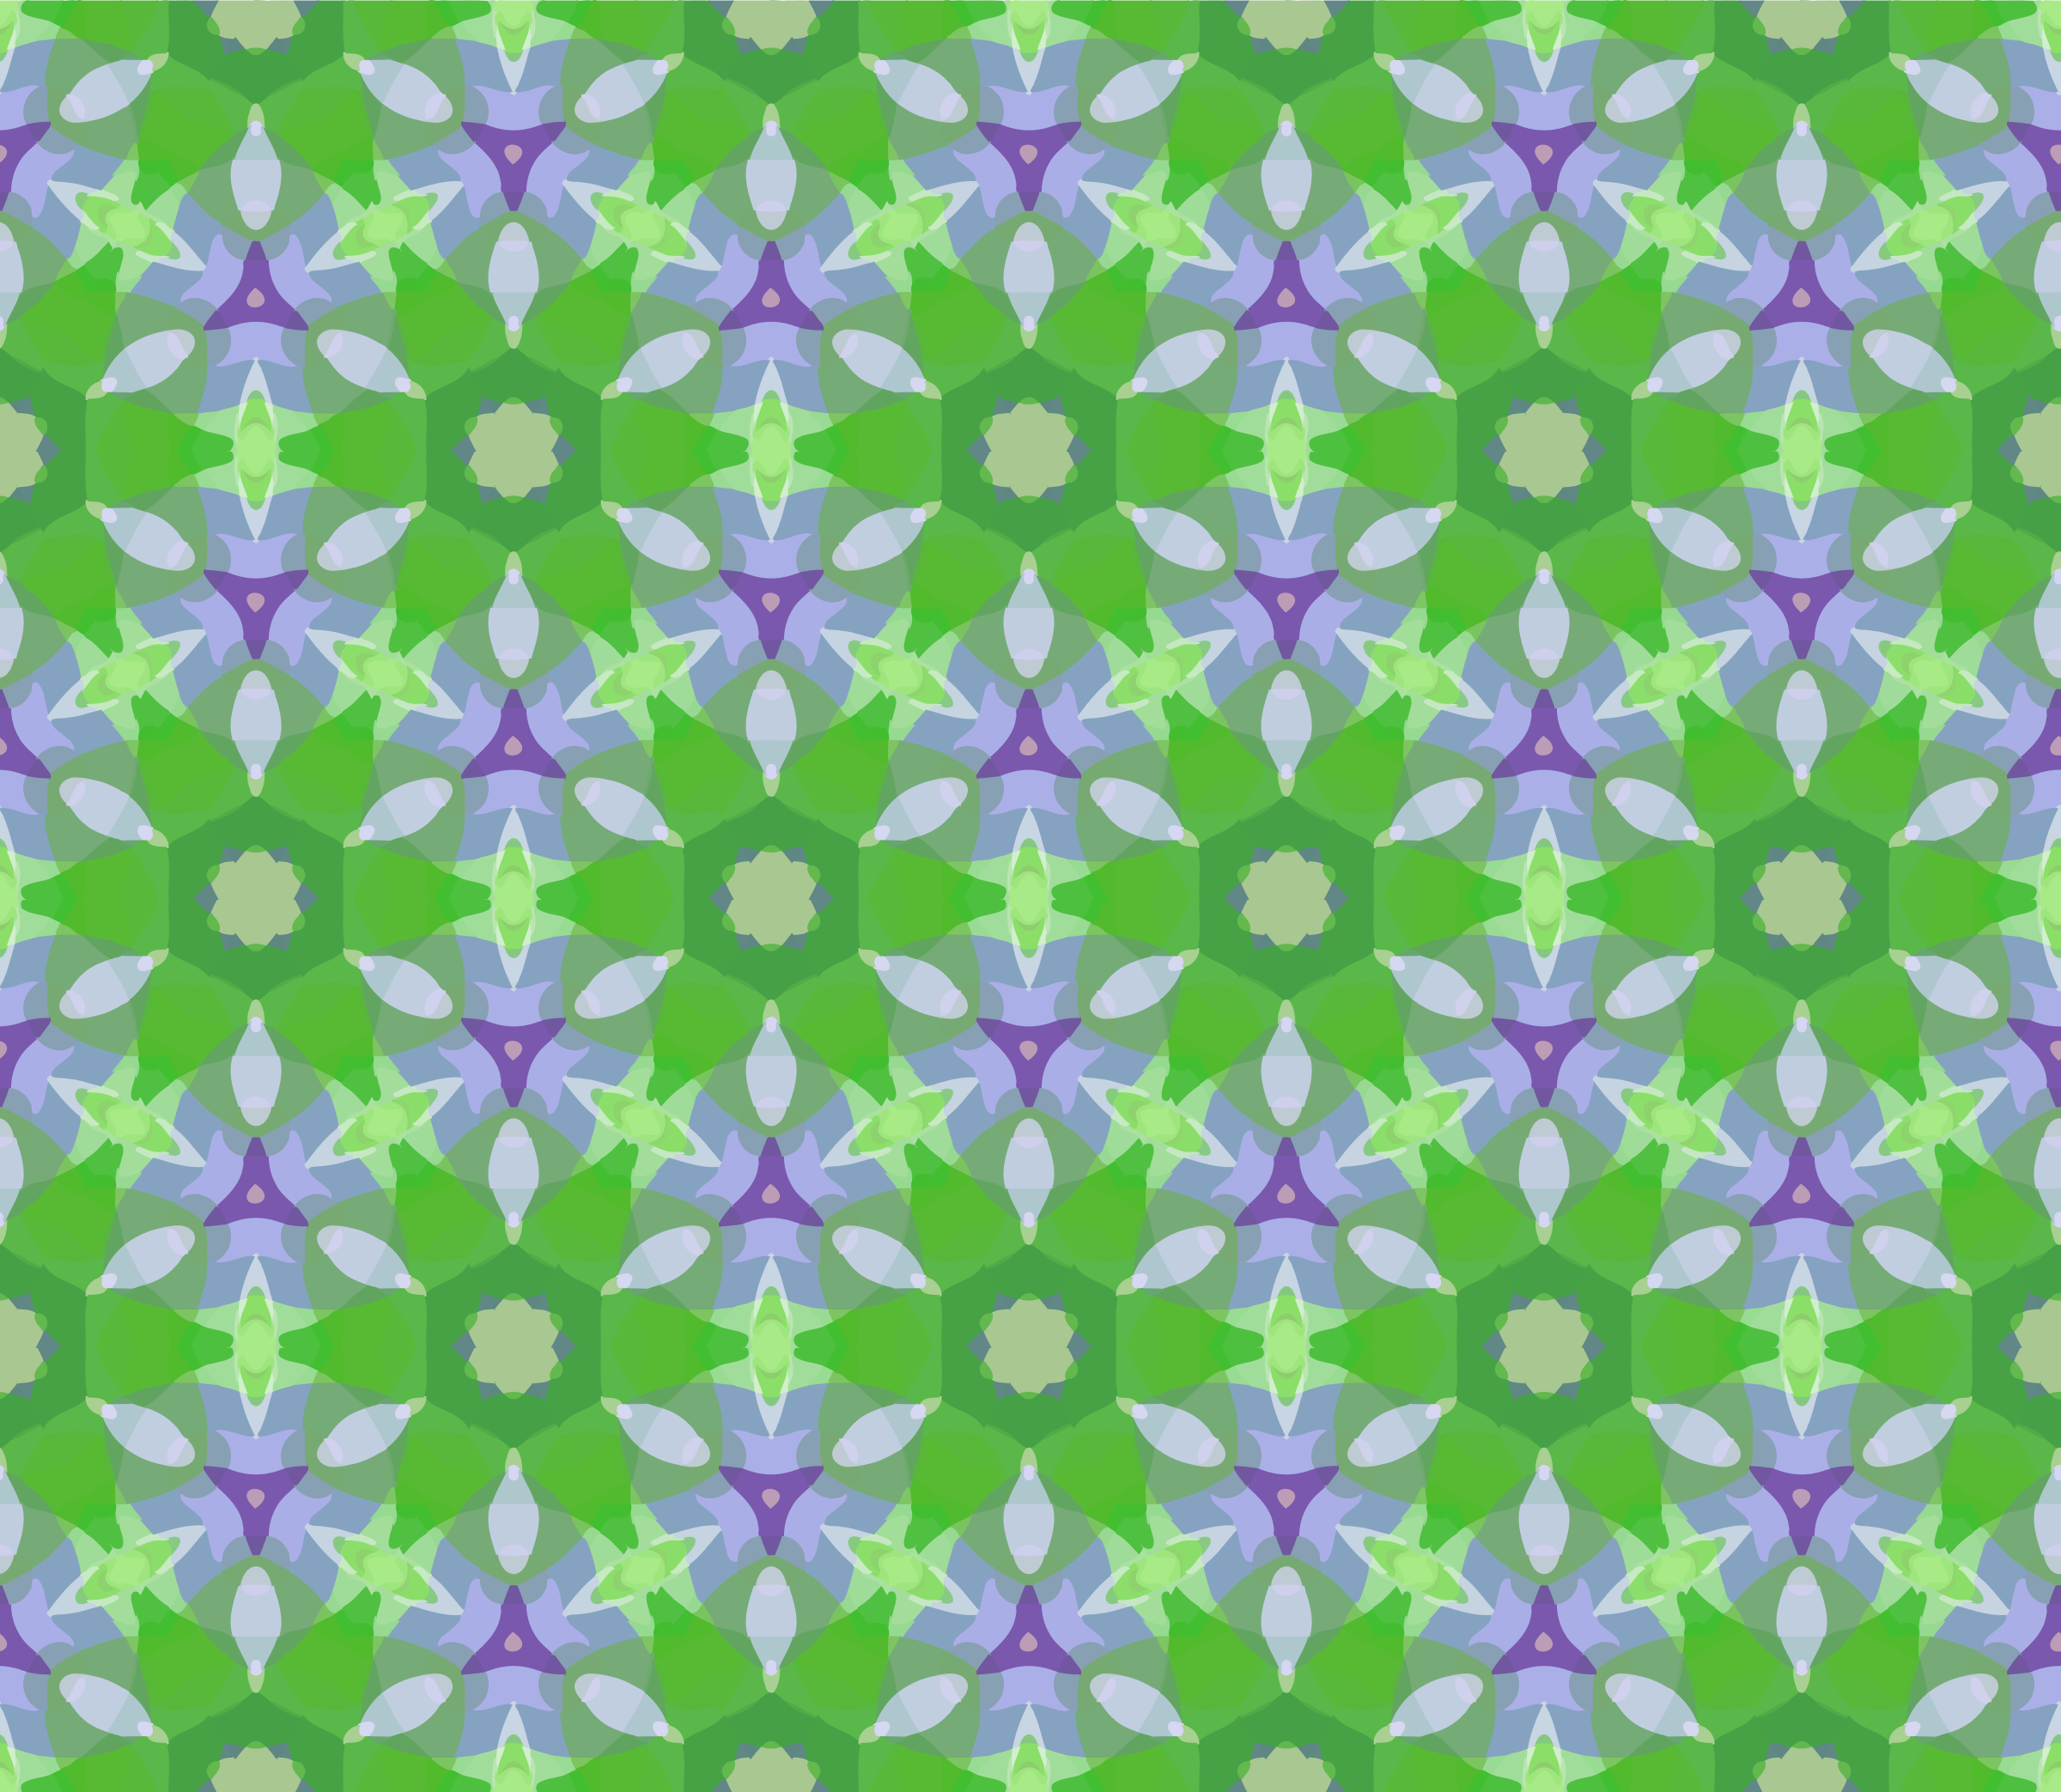 Background pattern 148 (colour 3) by Firkin